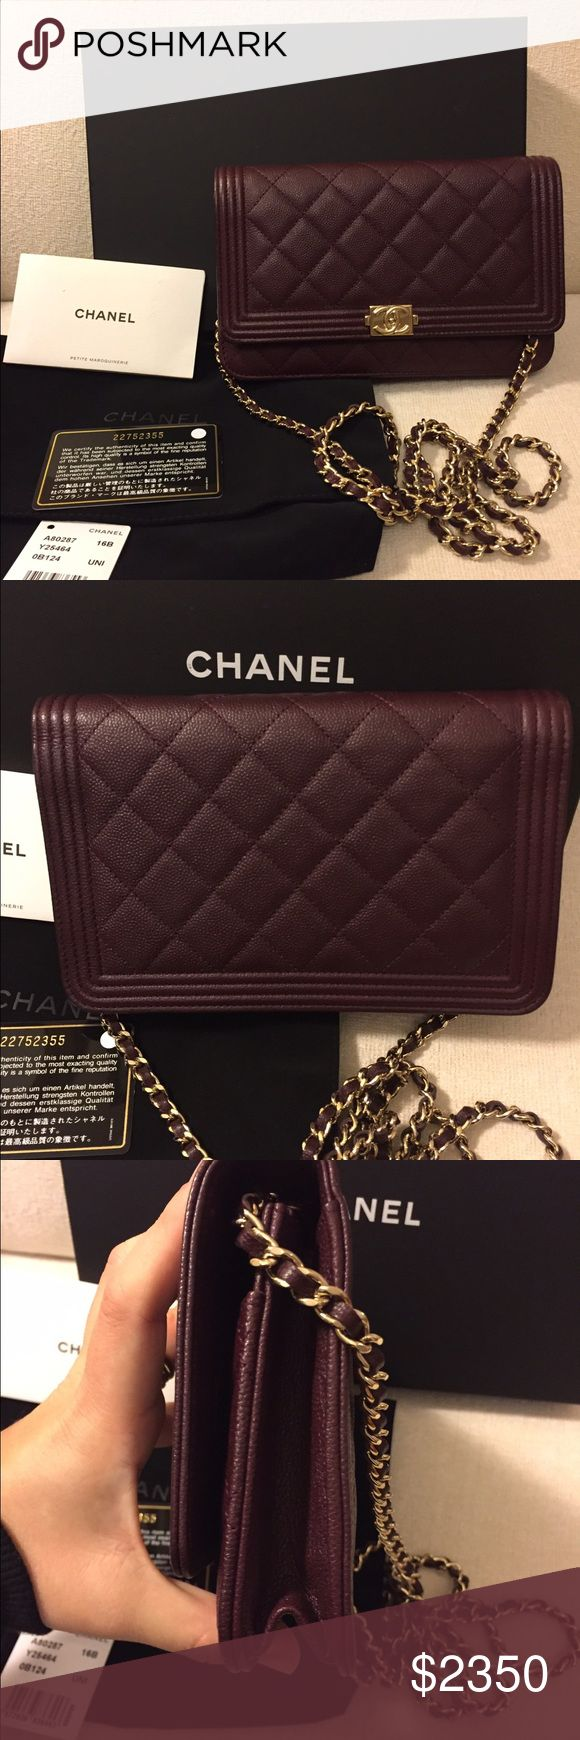 "Authentic Chanel Caviar Dark Purple Boy Woc Bag Authentic. 2016 collection. Color called dark purple but it looks more like a burgundy or dark wine. Light gold. Comes with box, dustbag, tag, care booklet and authenticity card. 4.7 x 7.5"" x 1.8"". Snap closure. 24"" strap drop. 6 card slots. This bag was used for about two weeks. Some minor scratches on hardware. Slight indentation inside from zipper pull which is common with this bag. Some marks on corners as pictured. Small mark on inside of…"